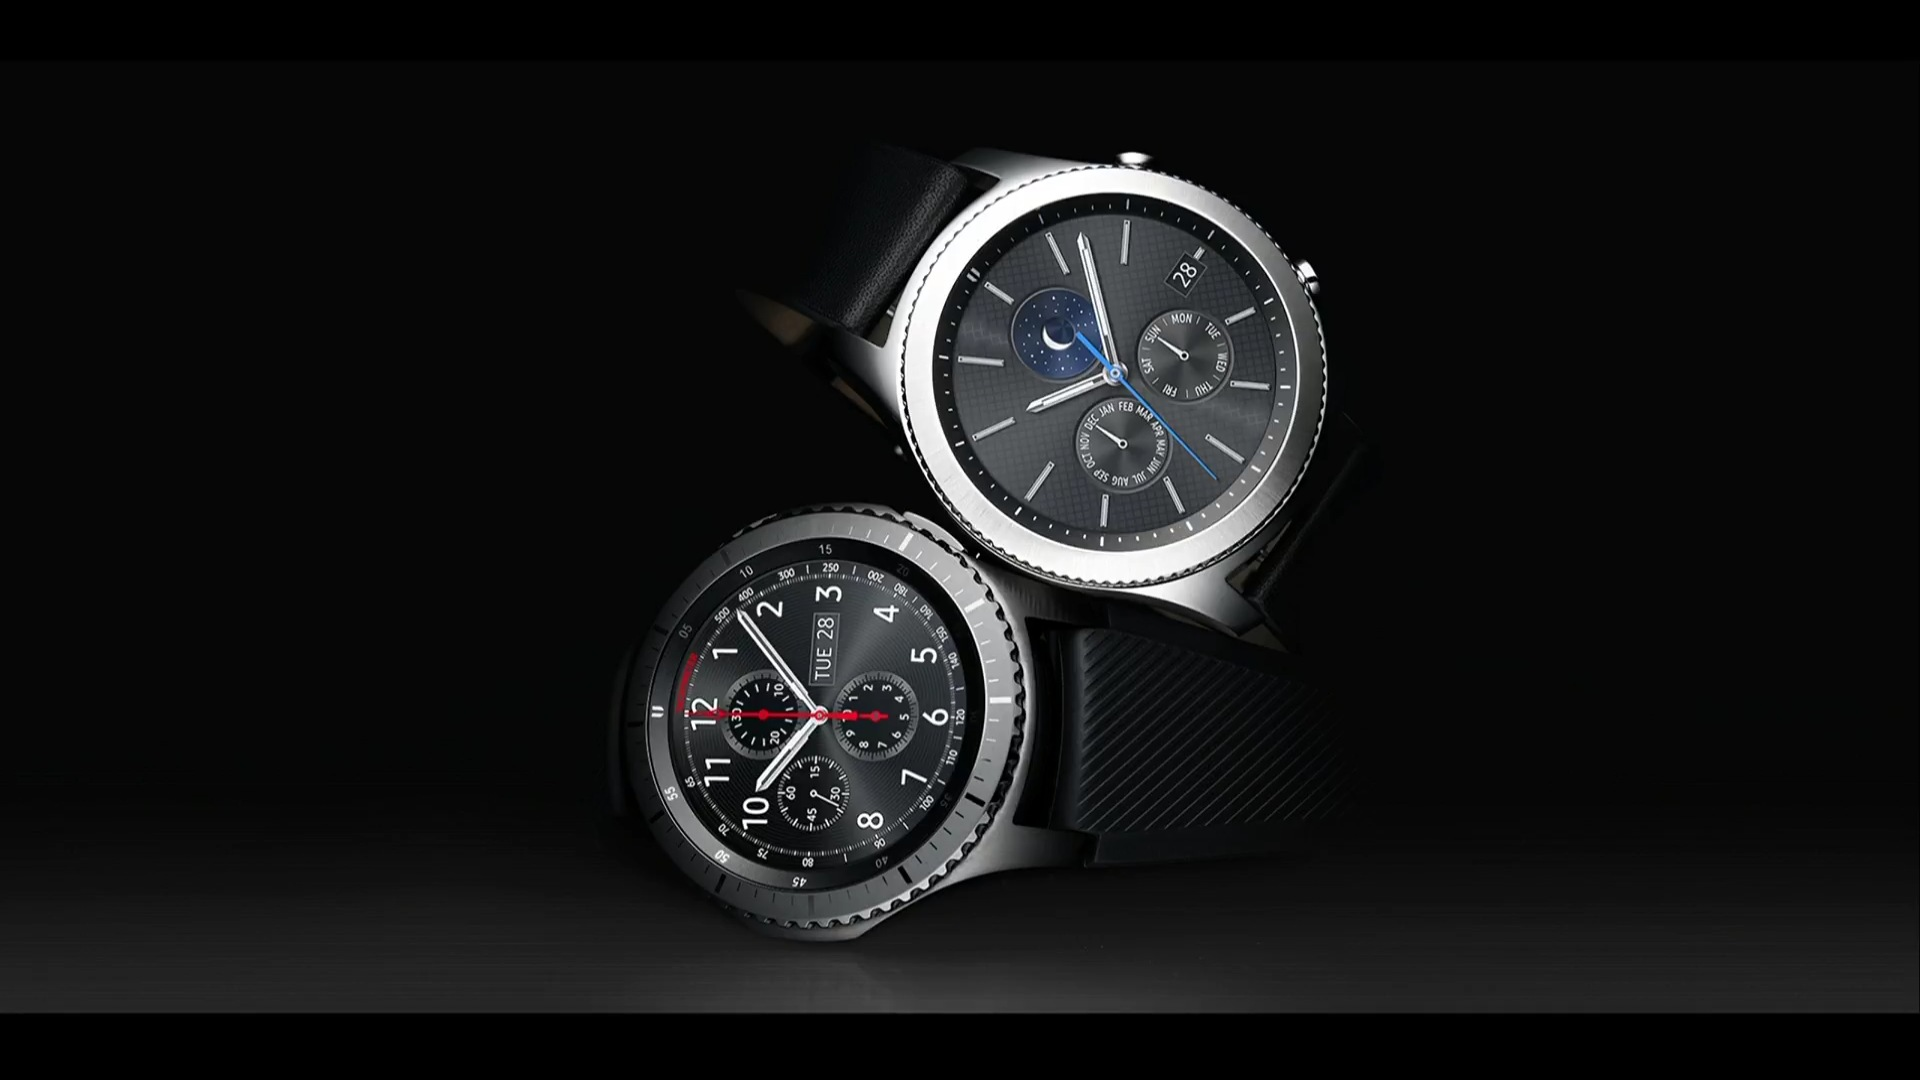 samsung gear s3 youtu.be-9C1-VEMgAEk (2)